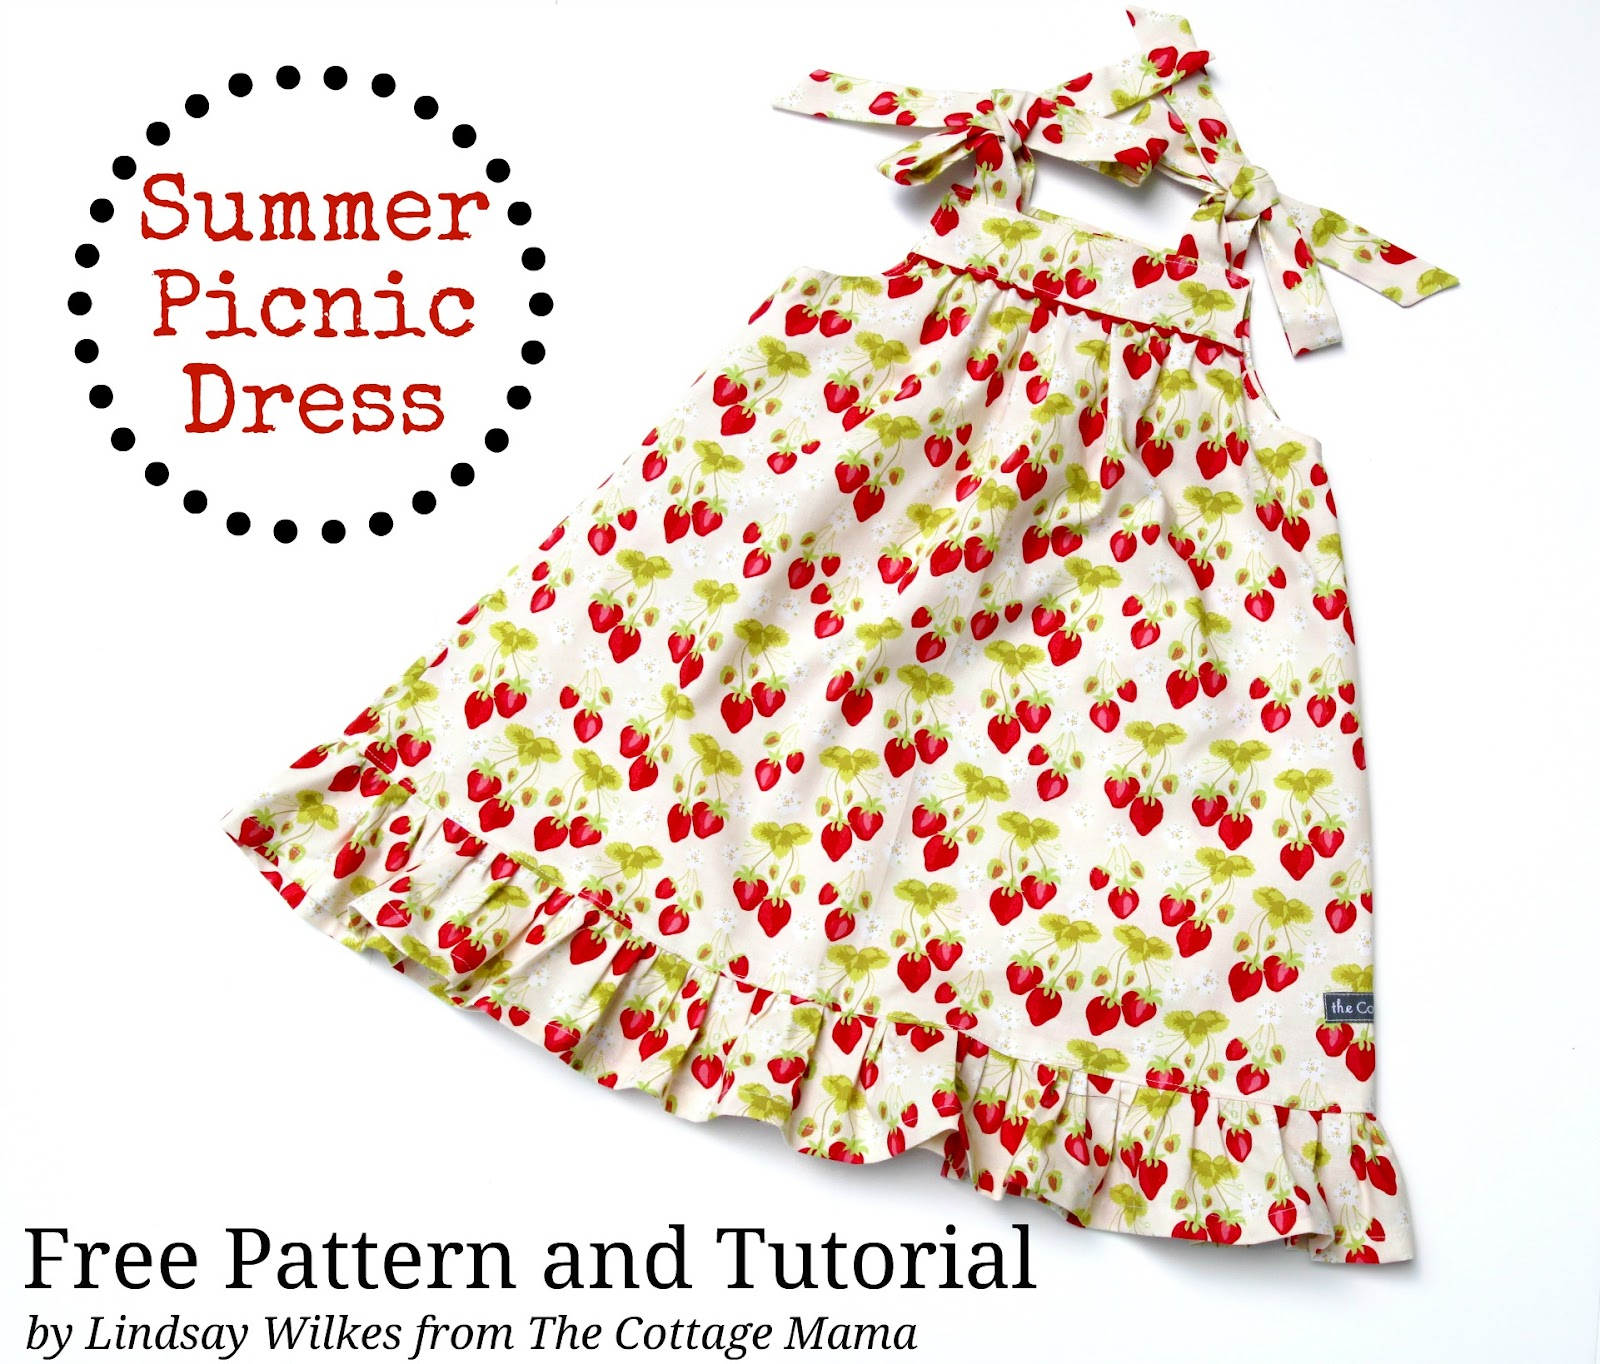 5a63e129ead Summer Picnic Dress ~ Free PDF Pattern and Tutorial - The Cottage Mama